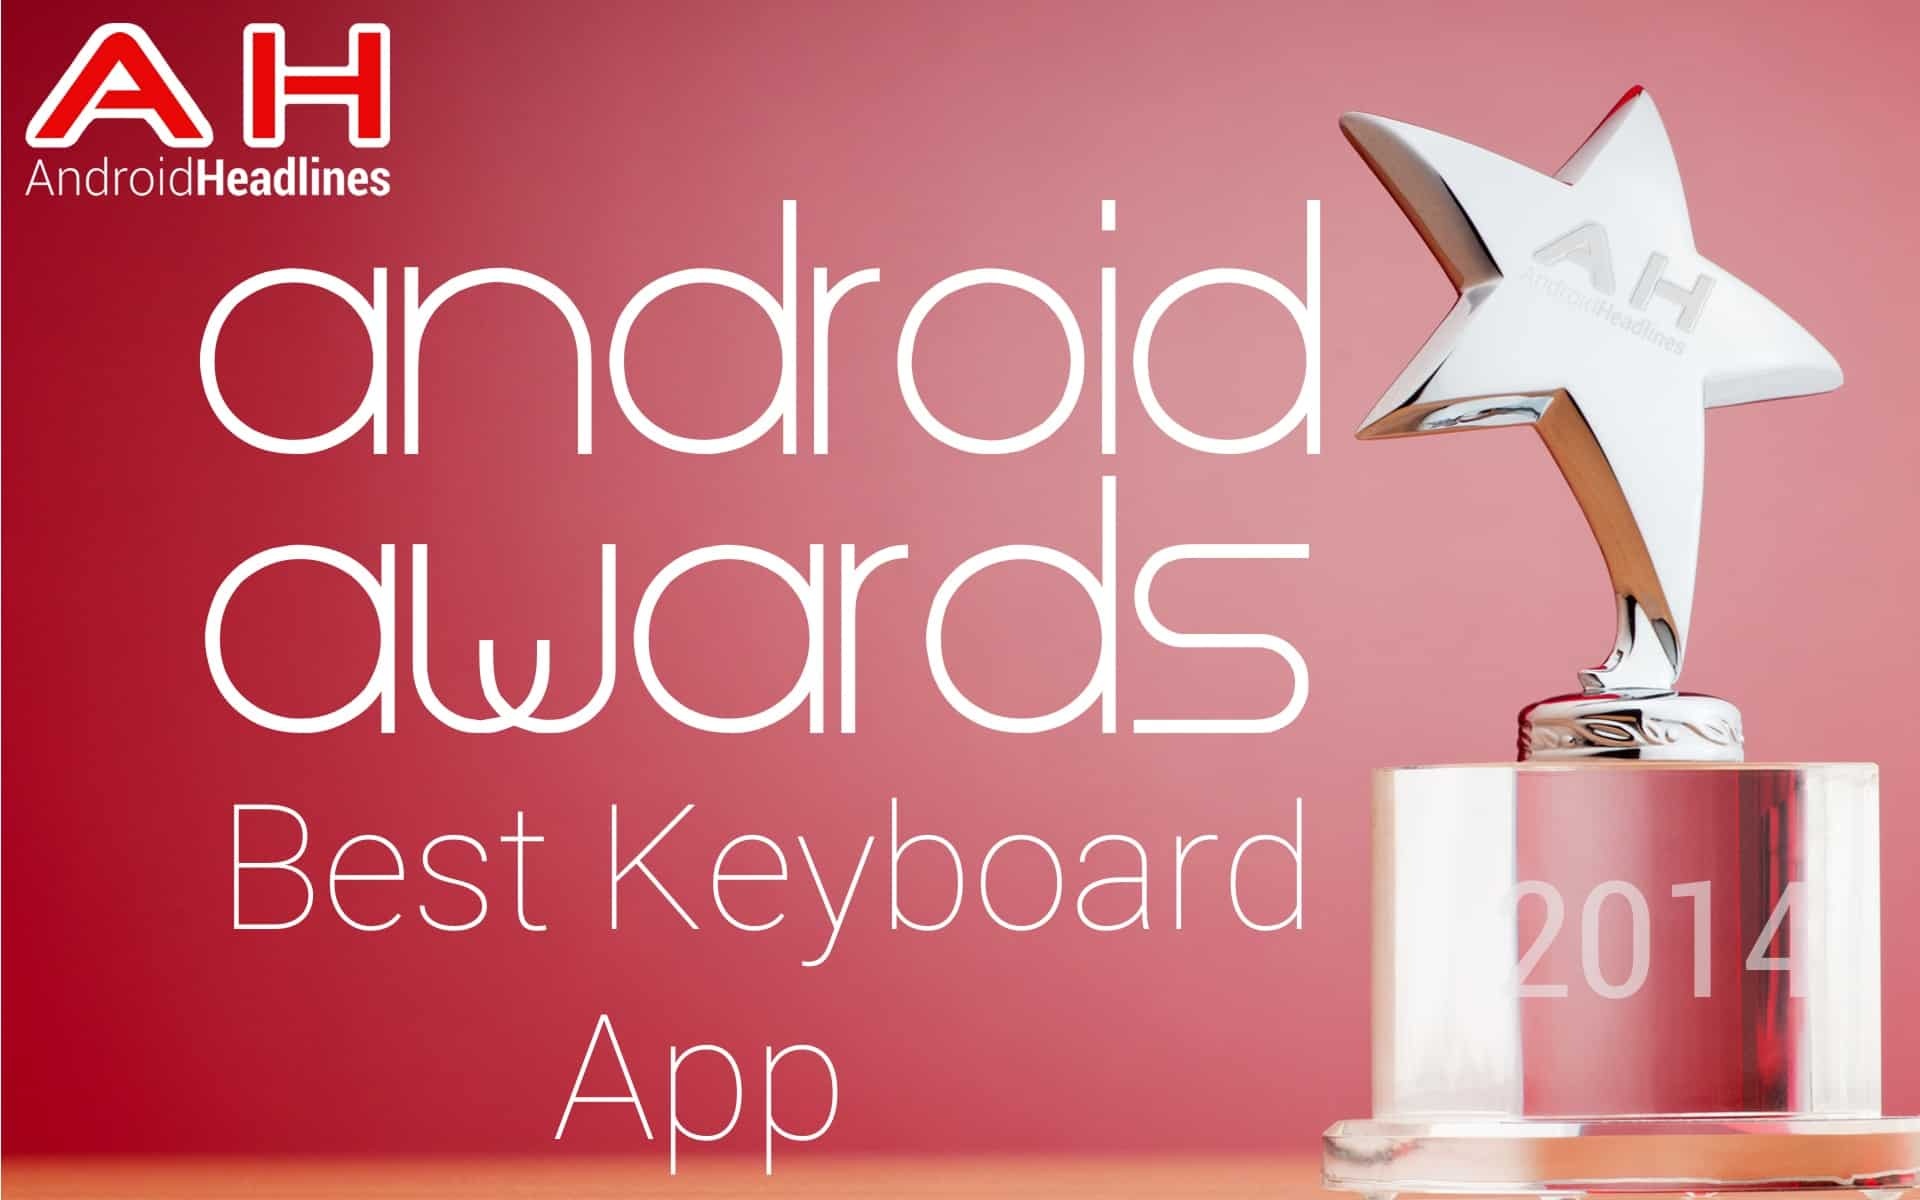 AH Awards 2015 Best Android Keyboard App